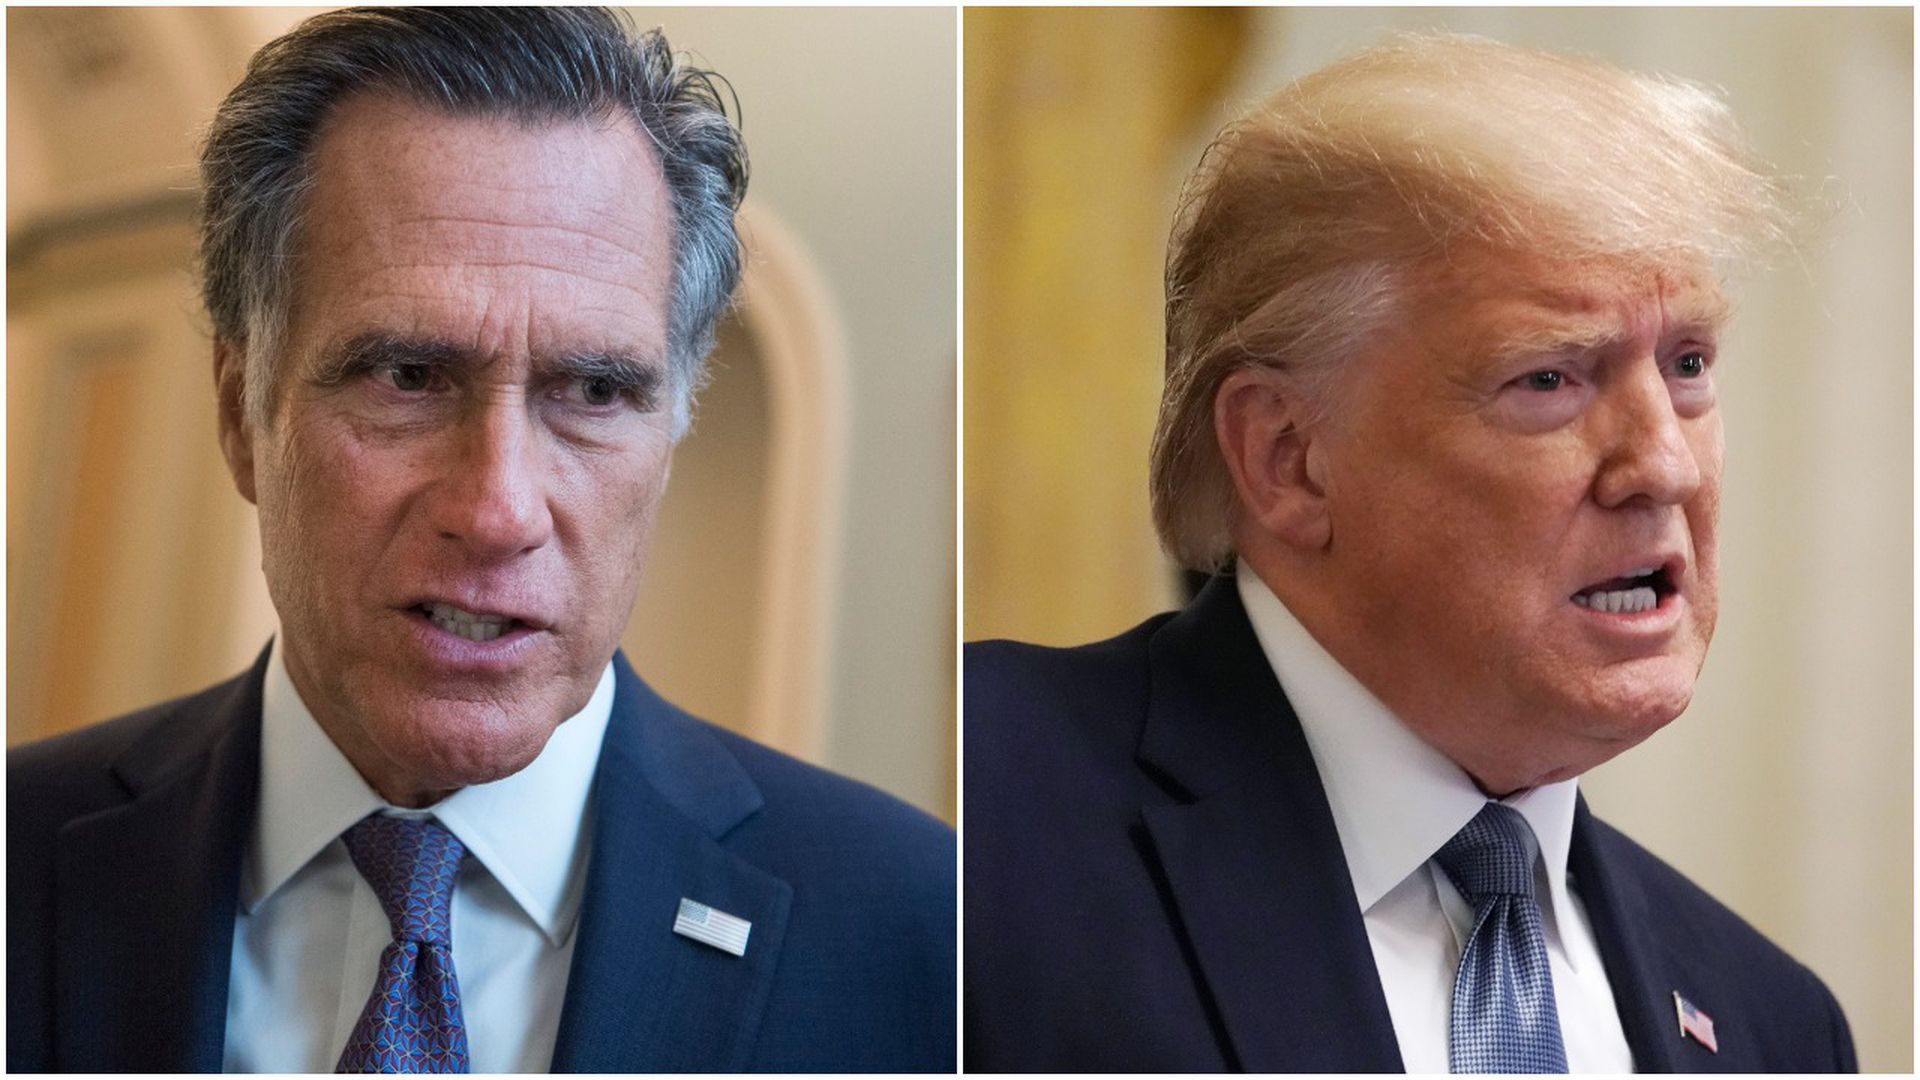 This image is a split screen between Romney and Trump